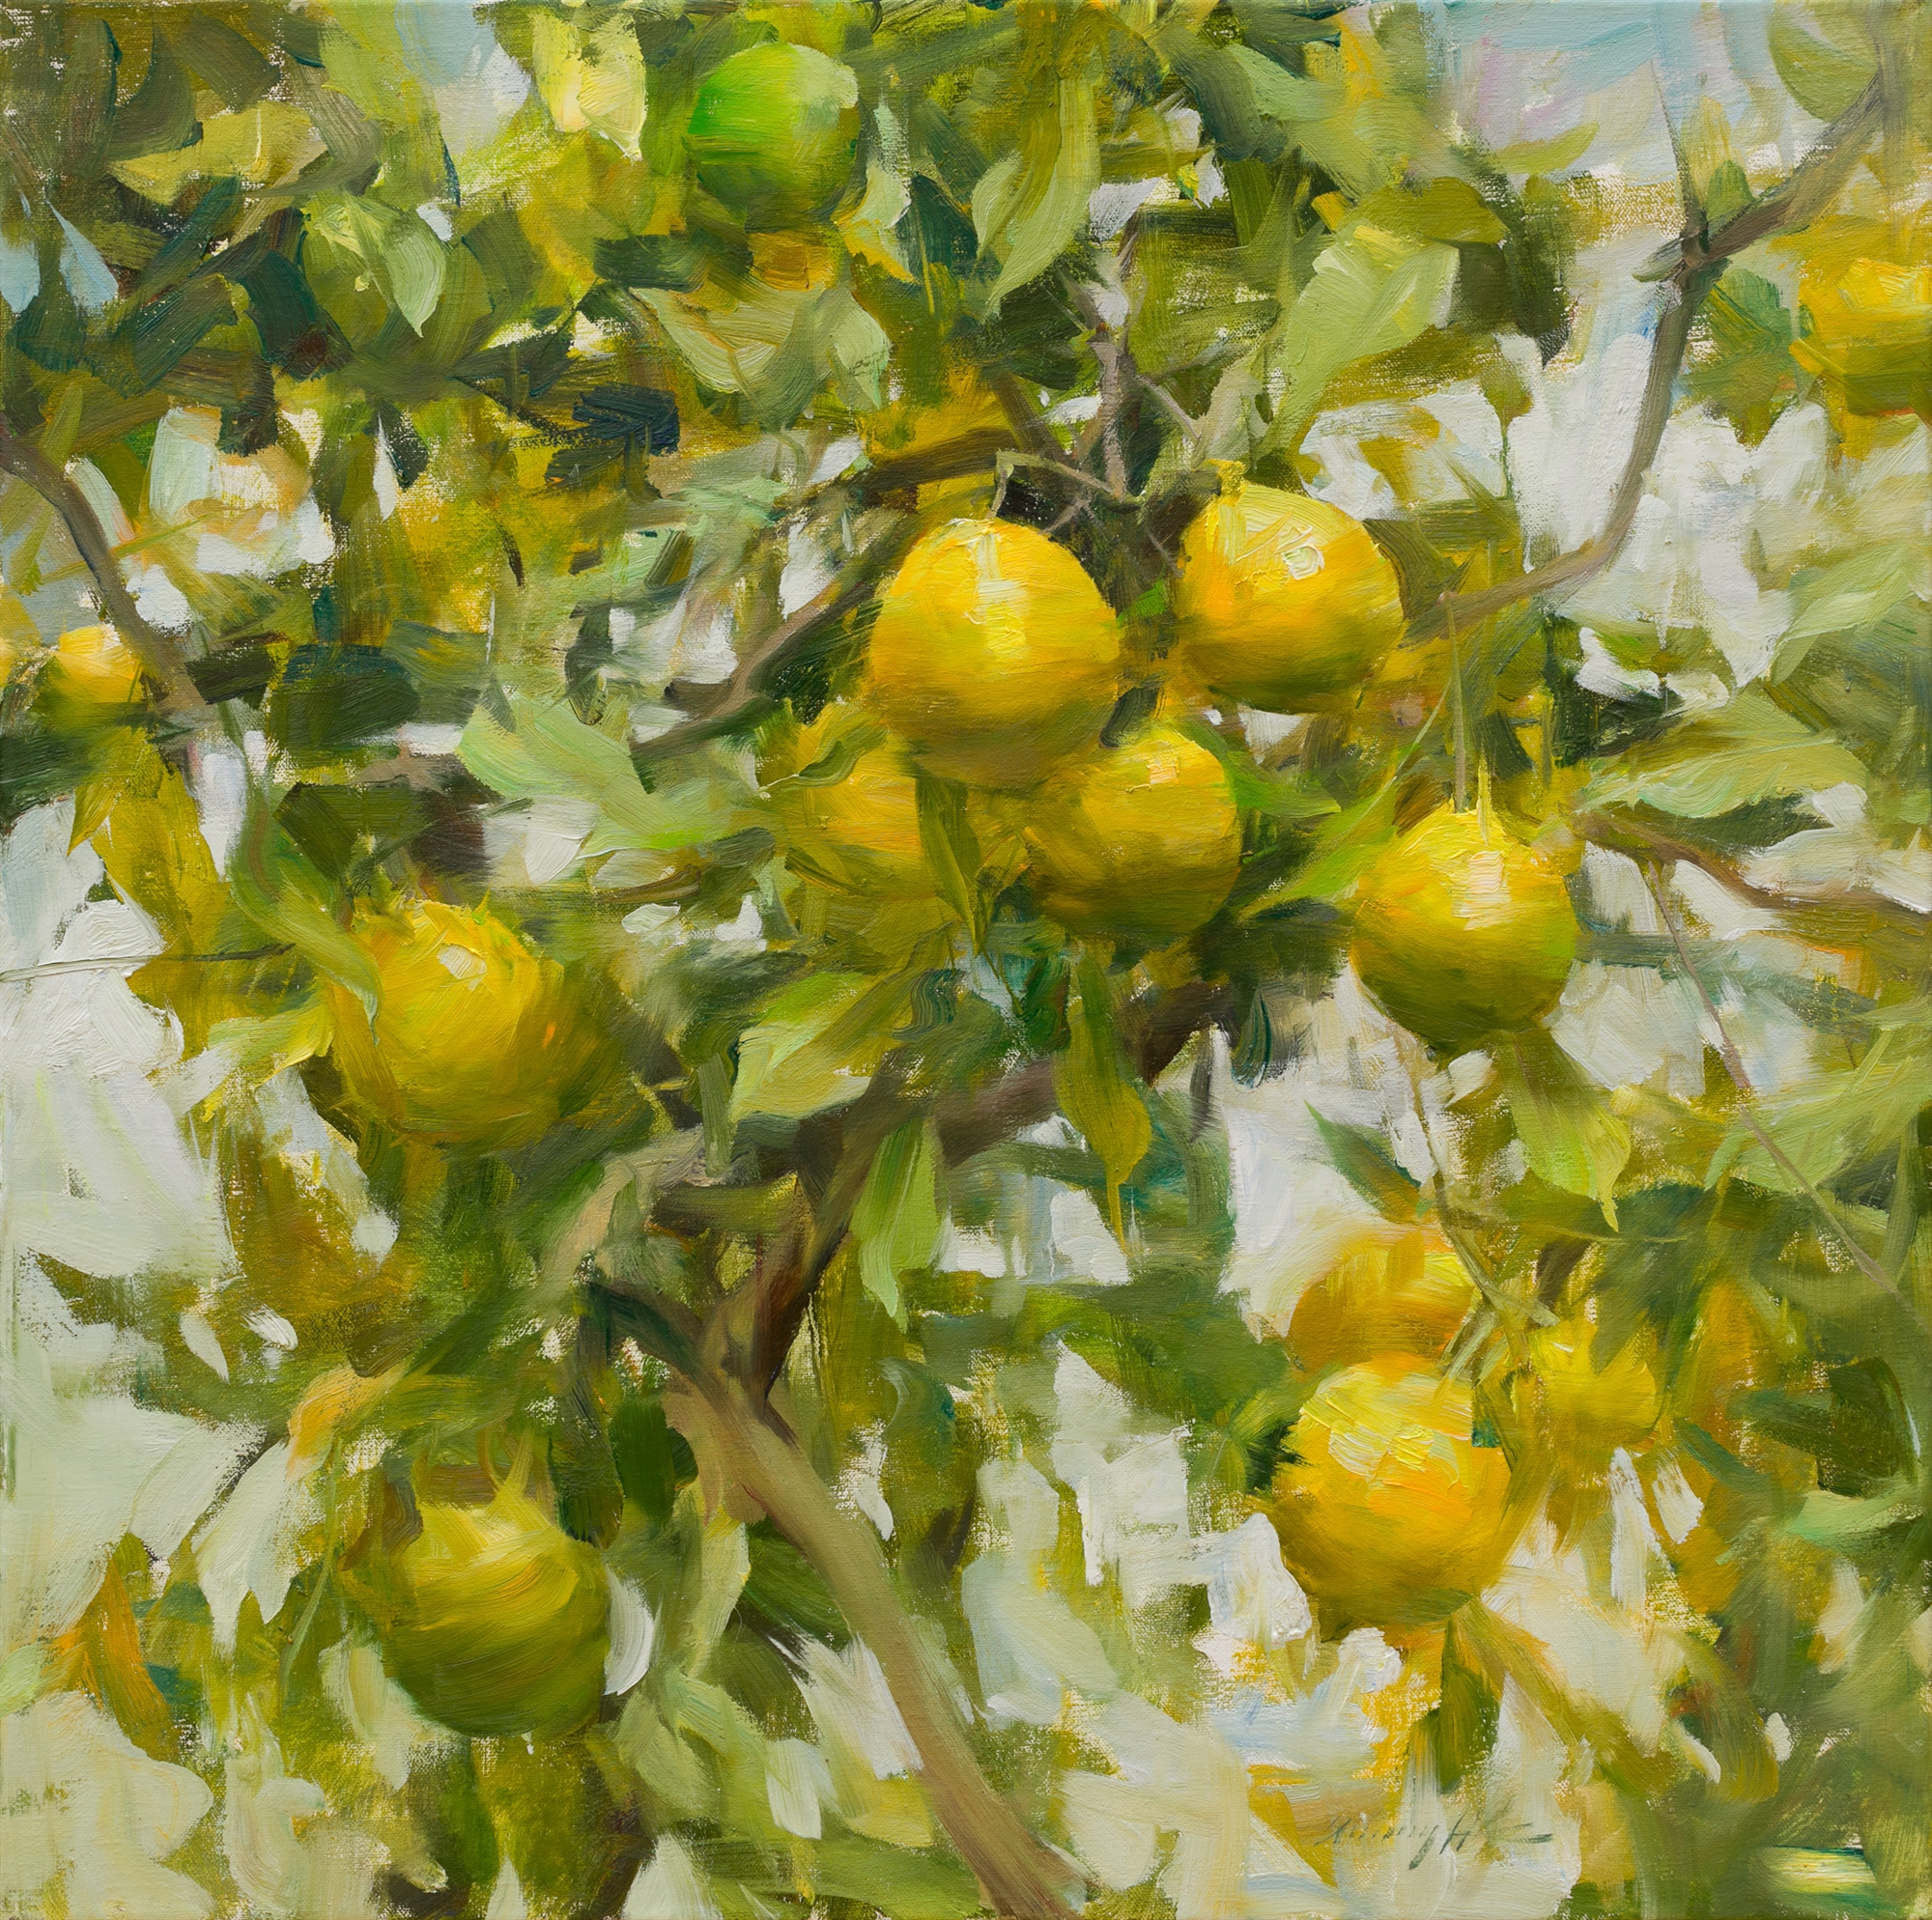 California Lemons by Quang Ho